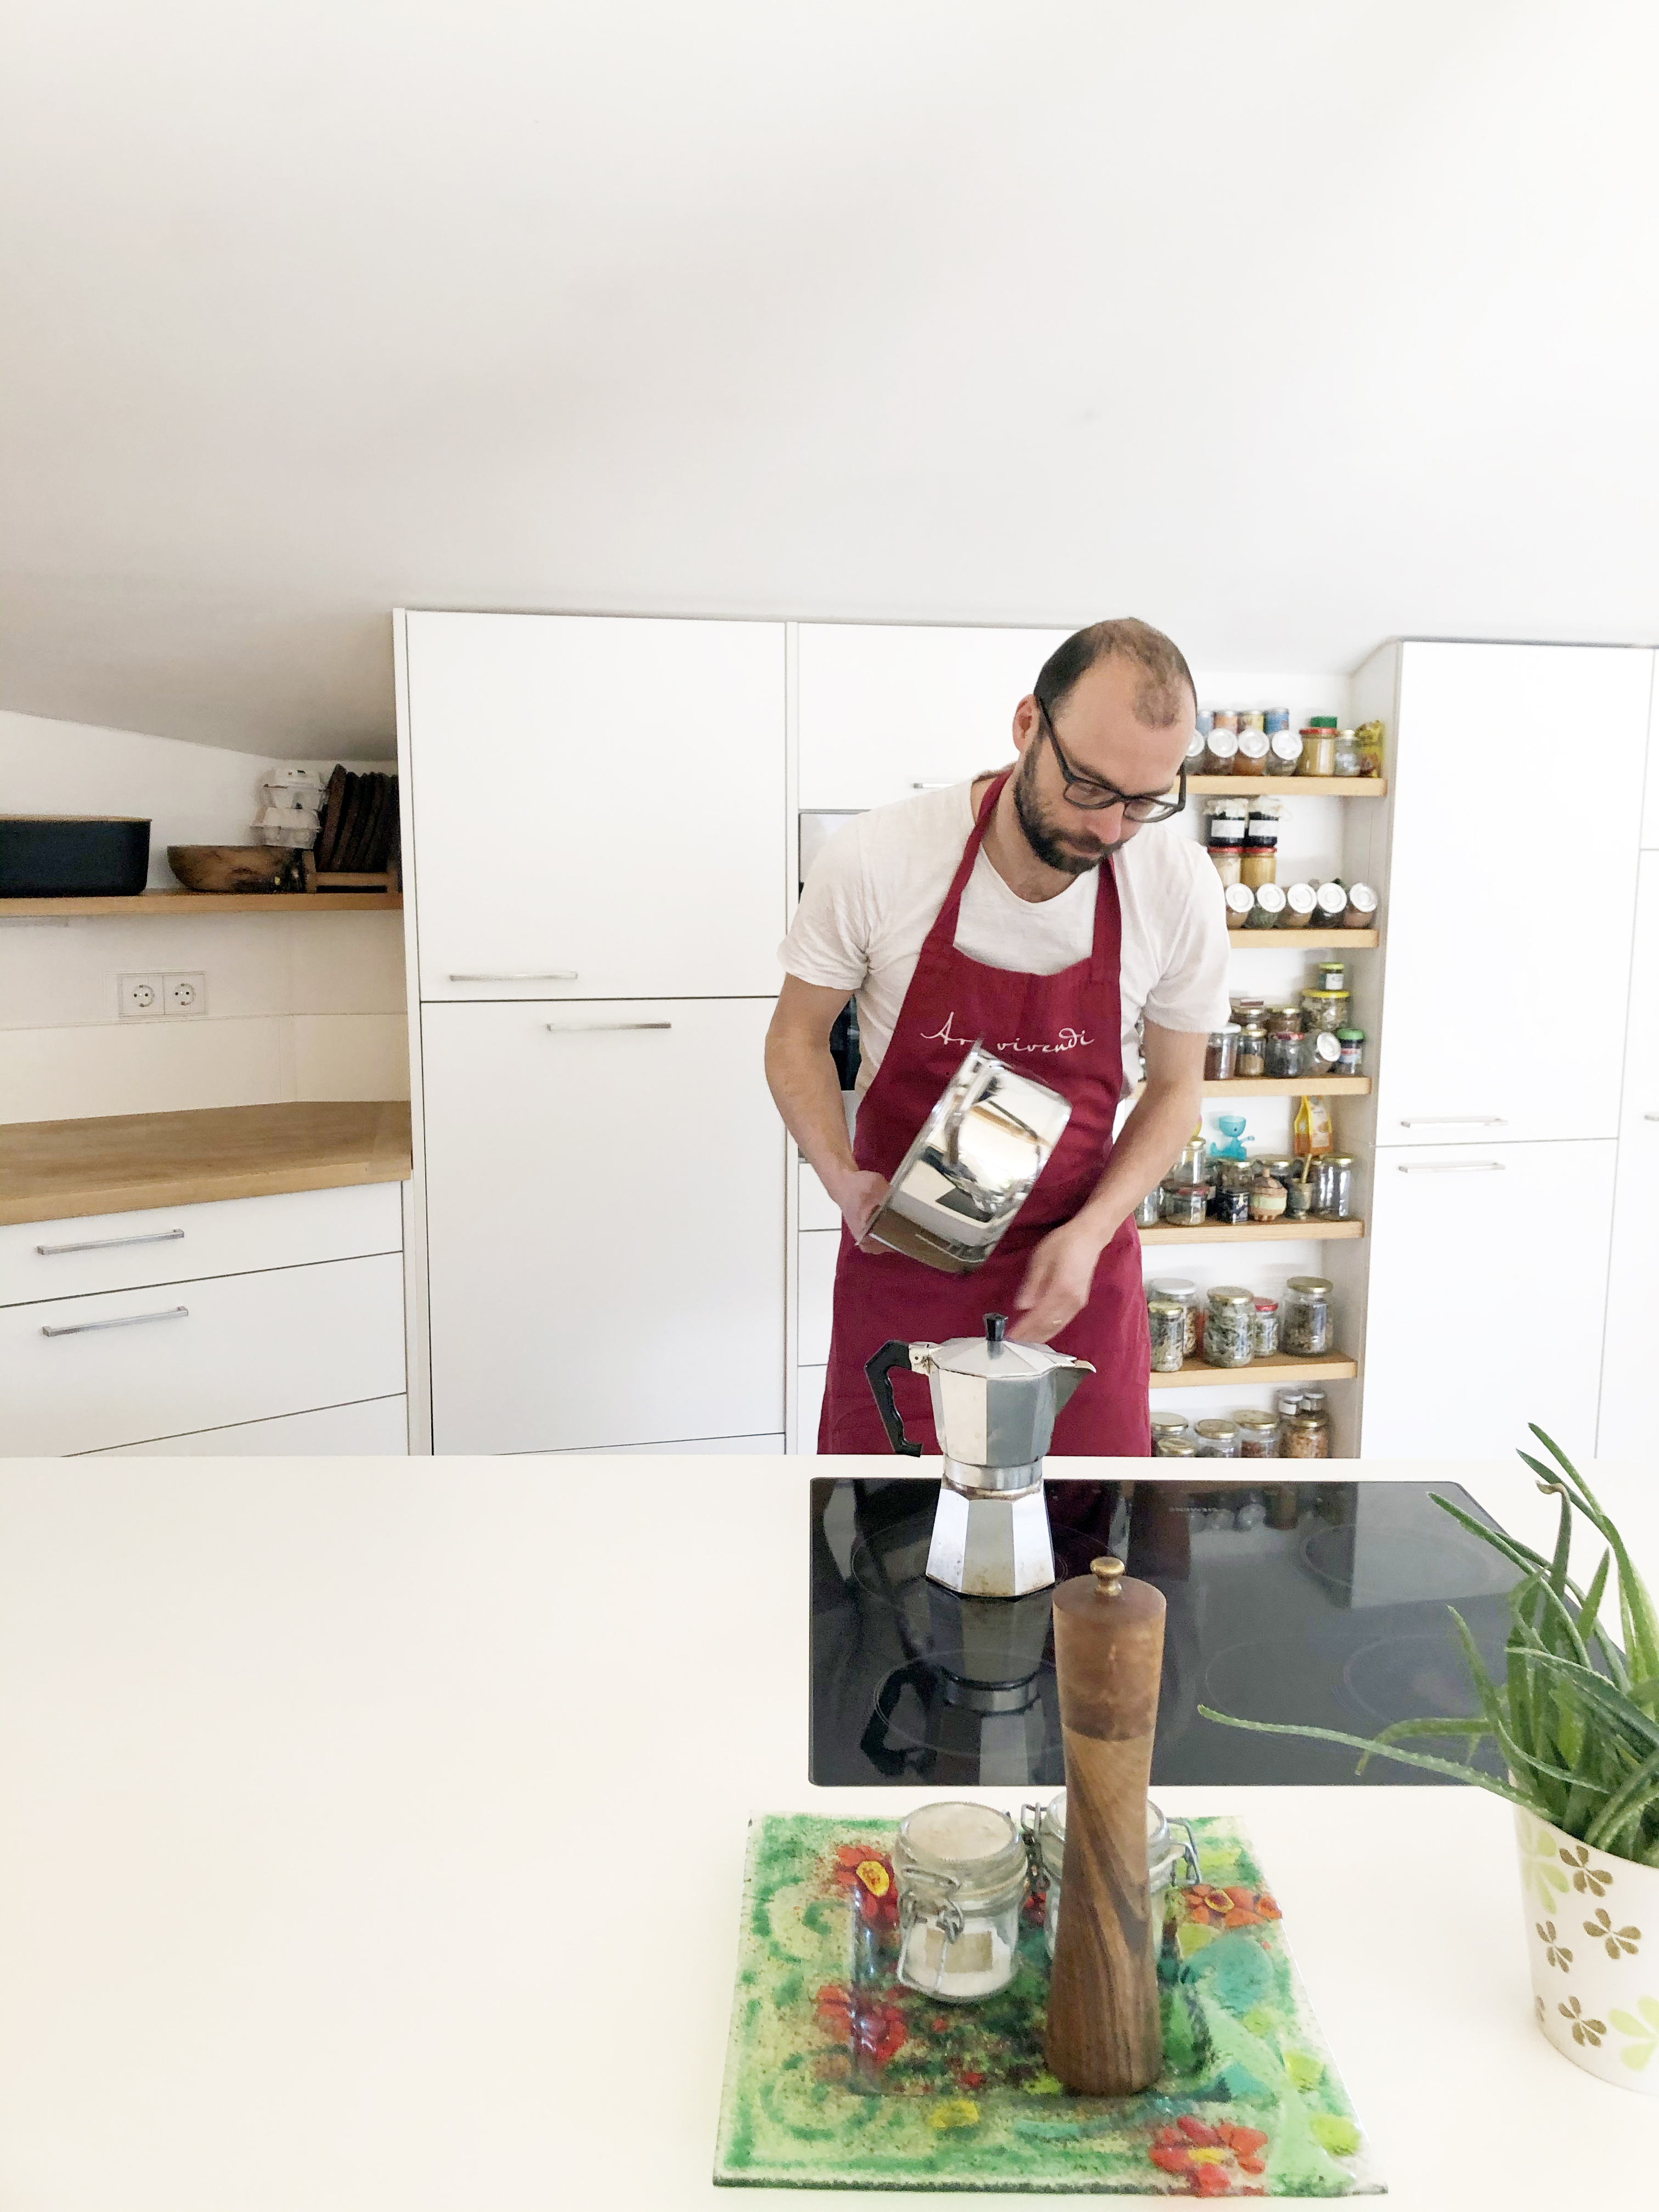 Hannes Egger, Kitchen Performance or The Order of Things, 2020